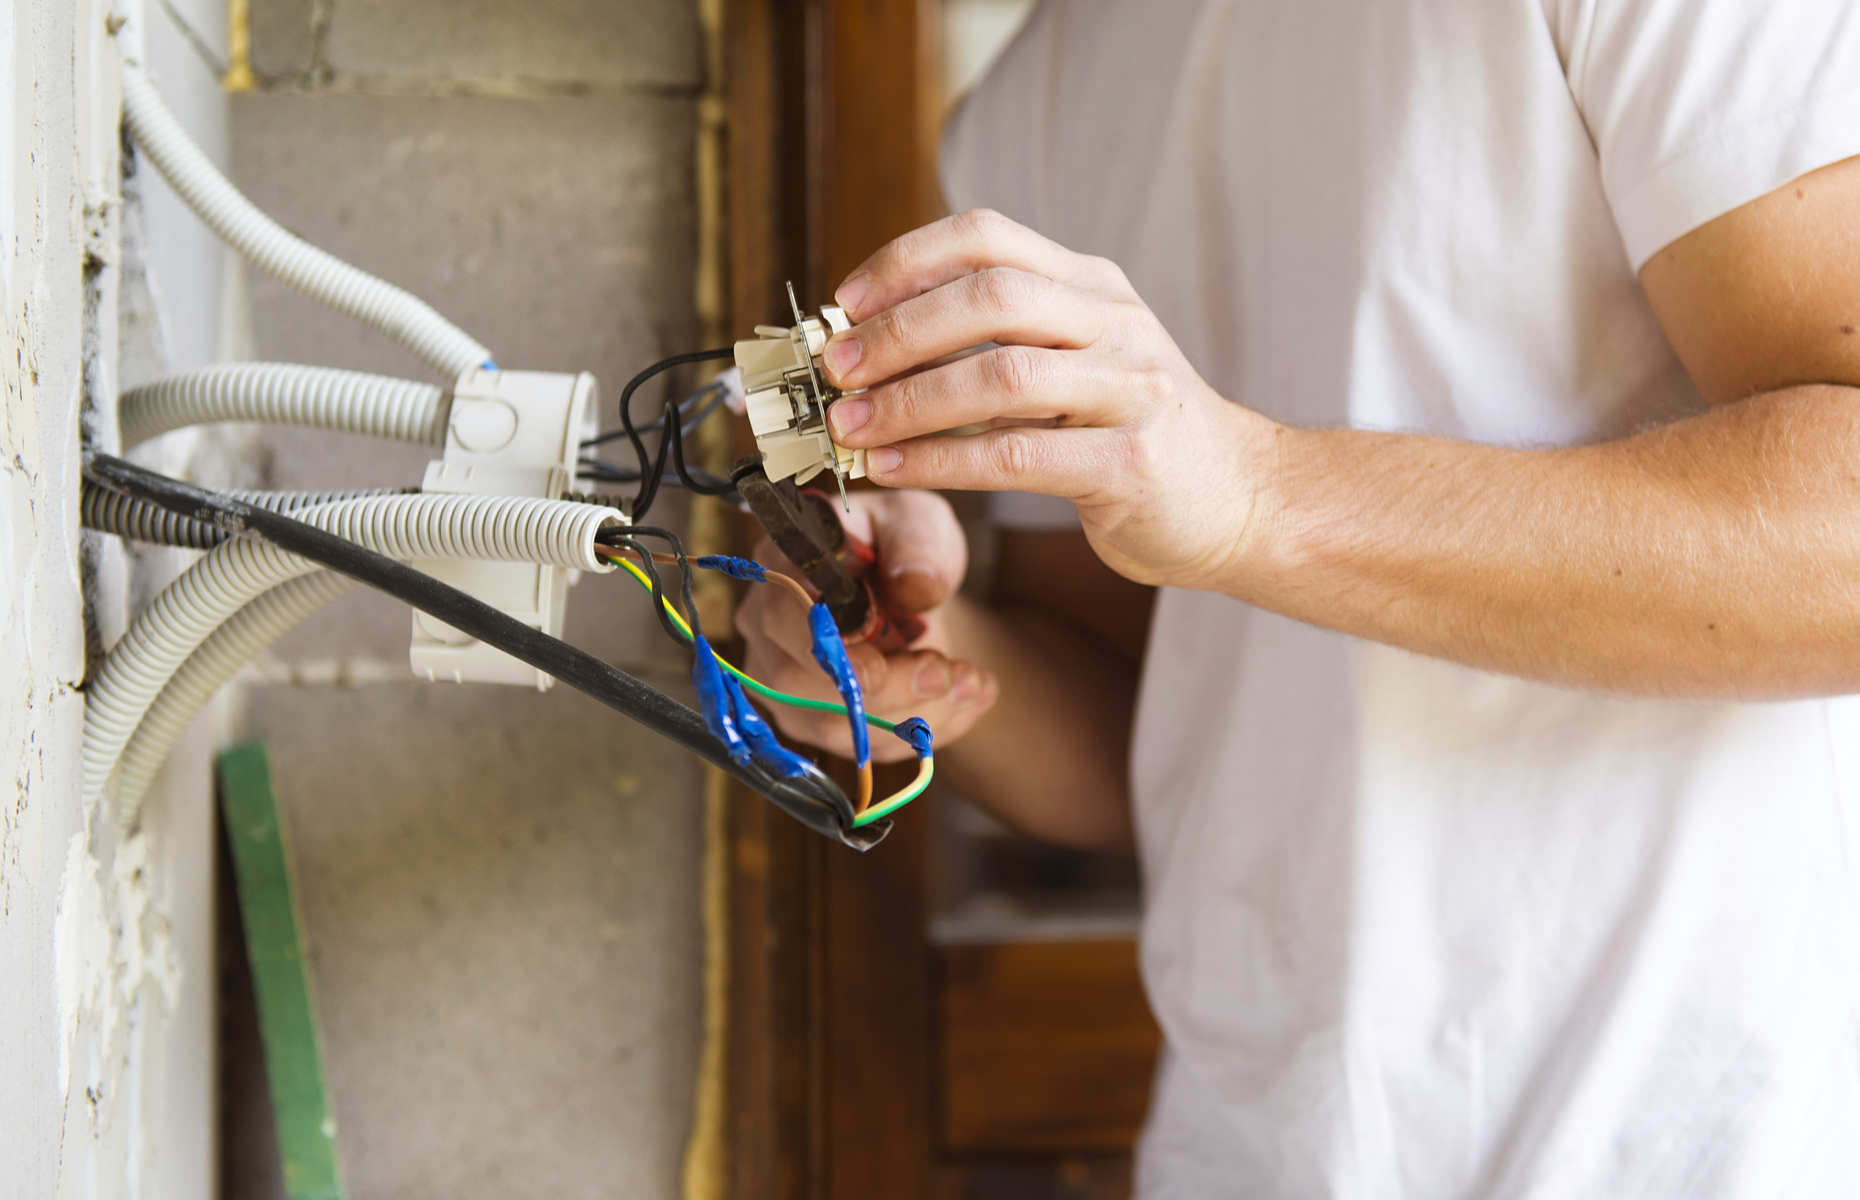 It's important to leave electrical repairs to the professionals. Image: Halfpoint / Shutterstock